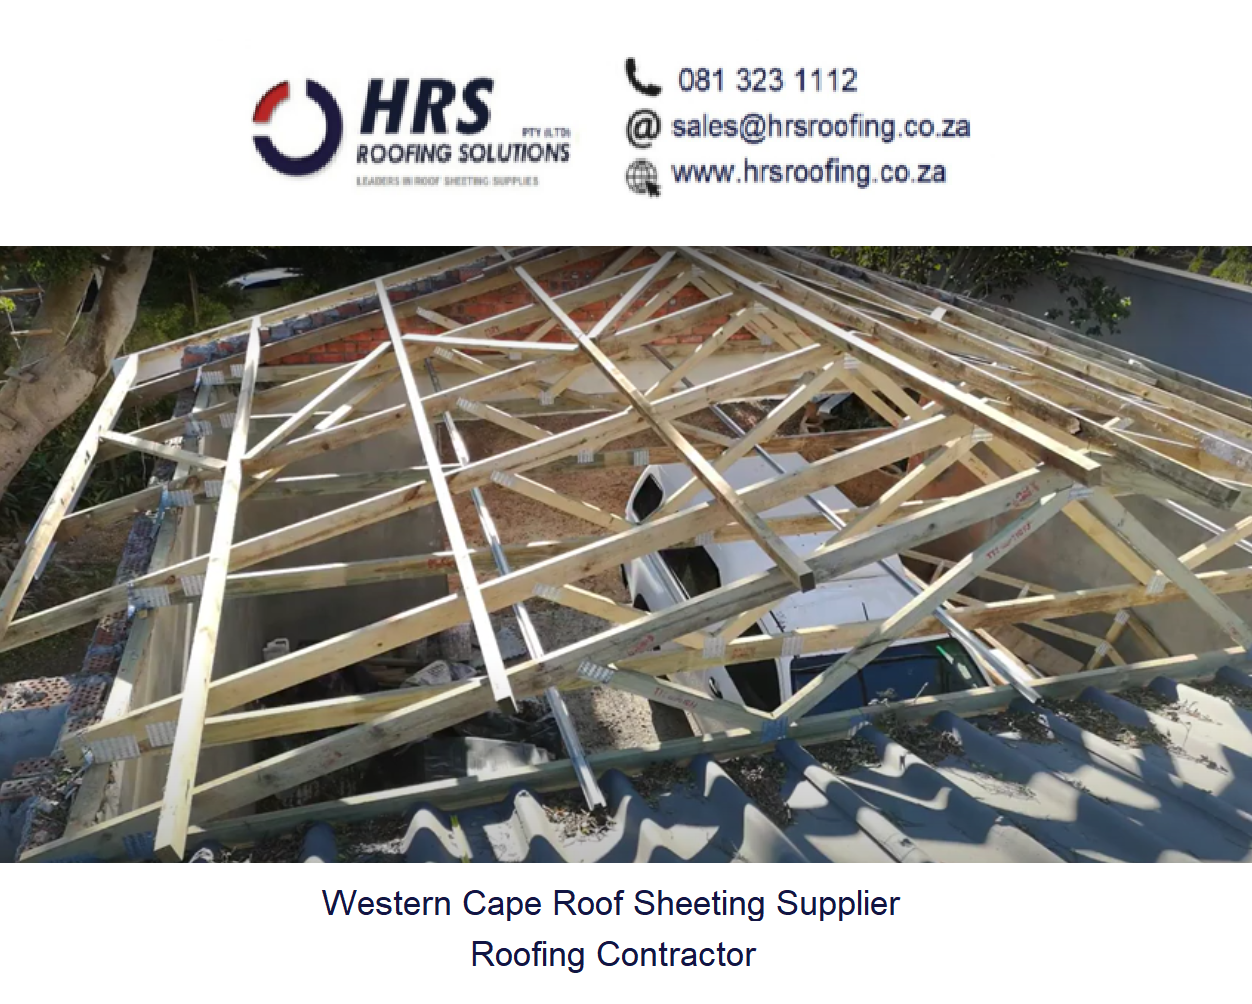 IBR or Corrugated Zincalume or Colorbond roof sheeting supplier deliverirs in Vredendal, table view, bellville, durbanville stellenbosch2 springlok 700 roofing contracot